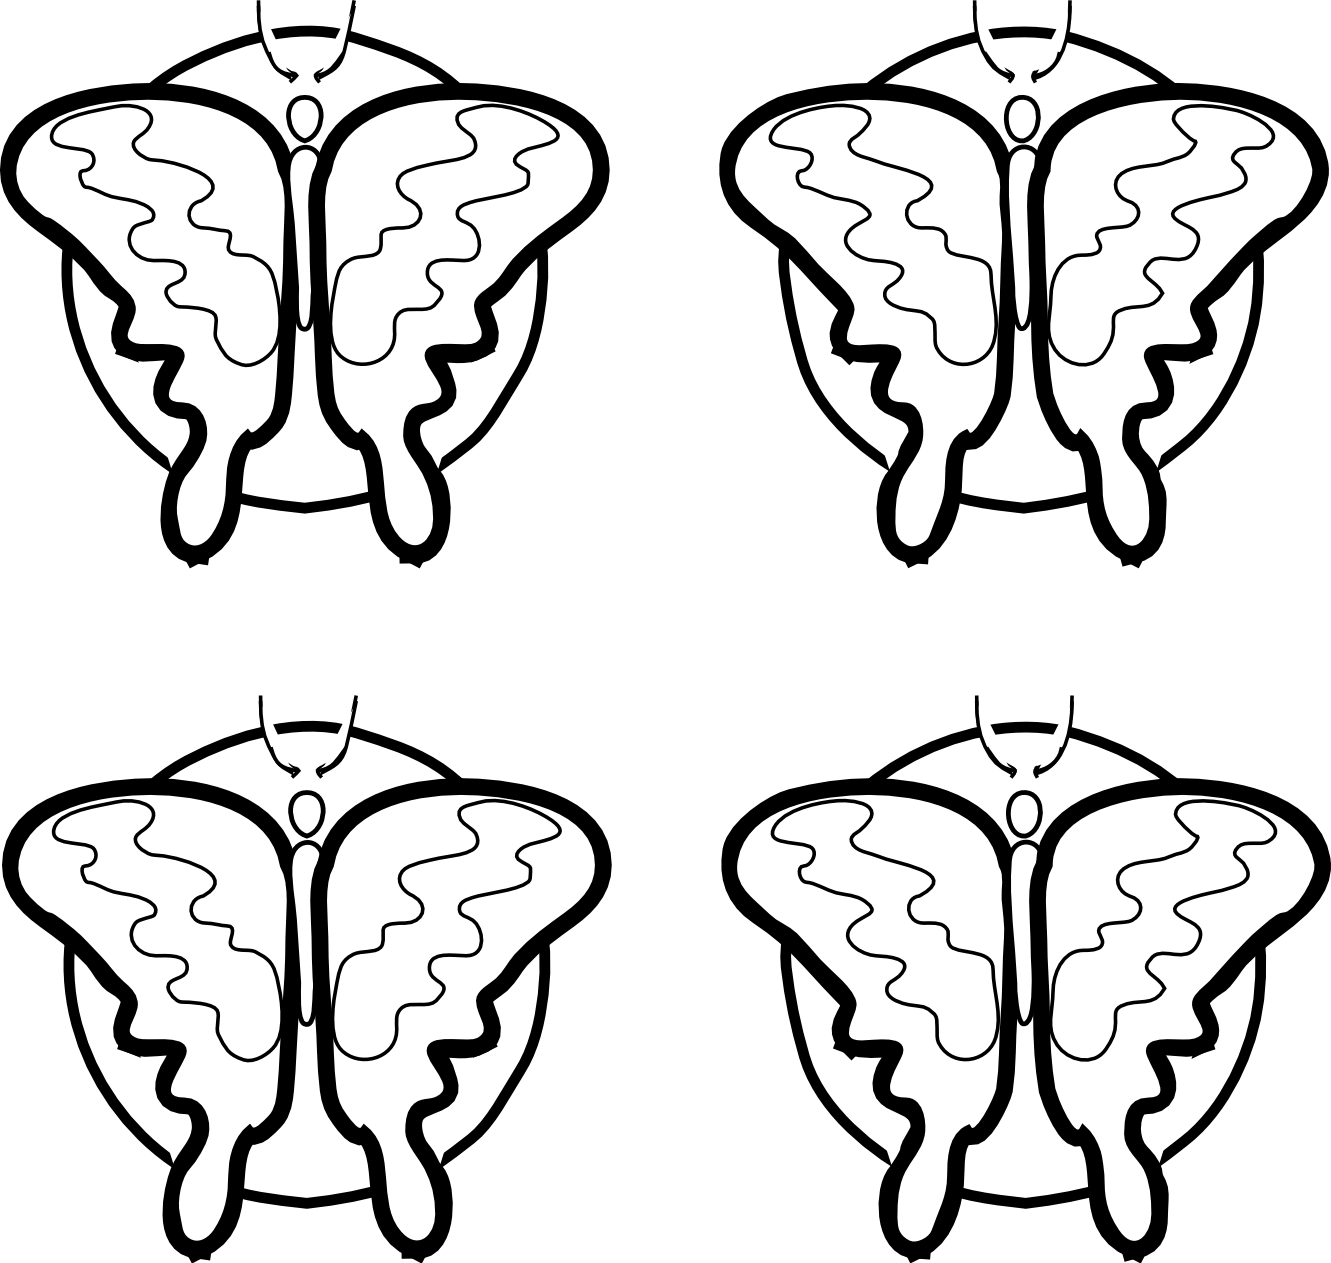 Battle clipart black and white. Free butterflies pictures download